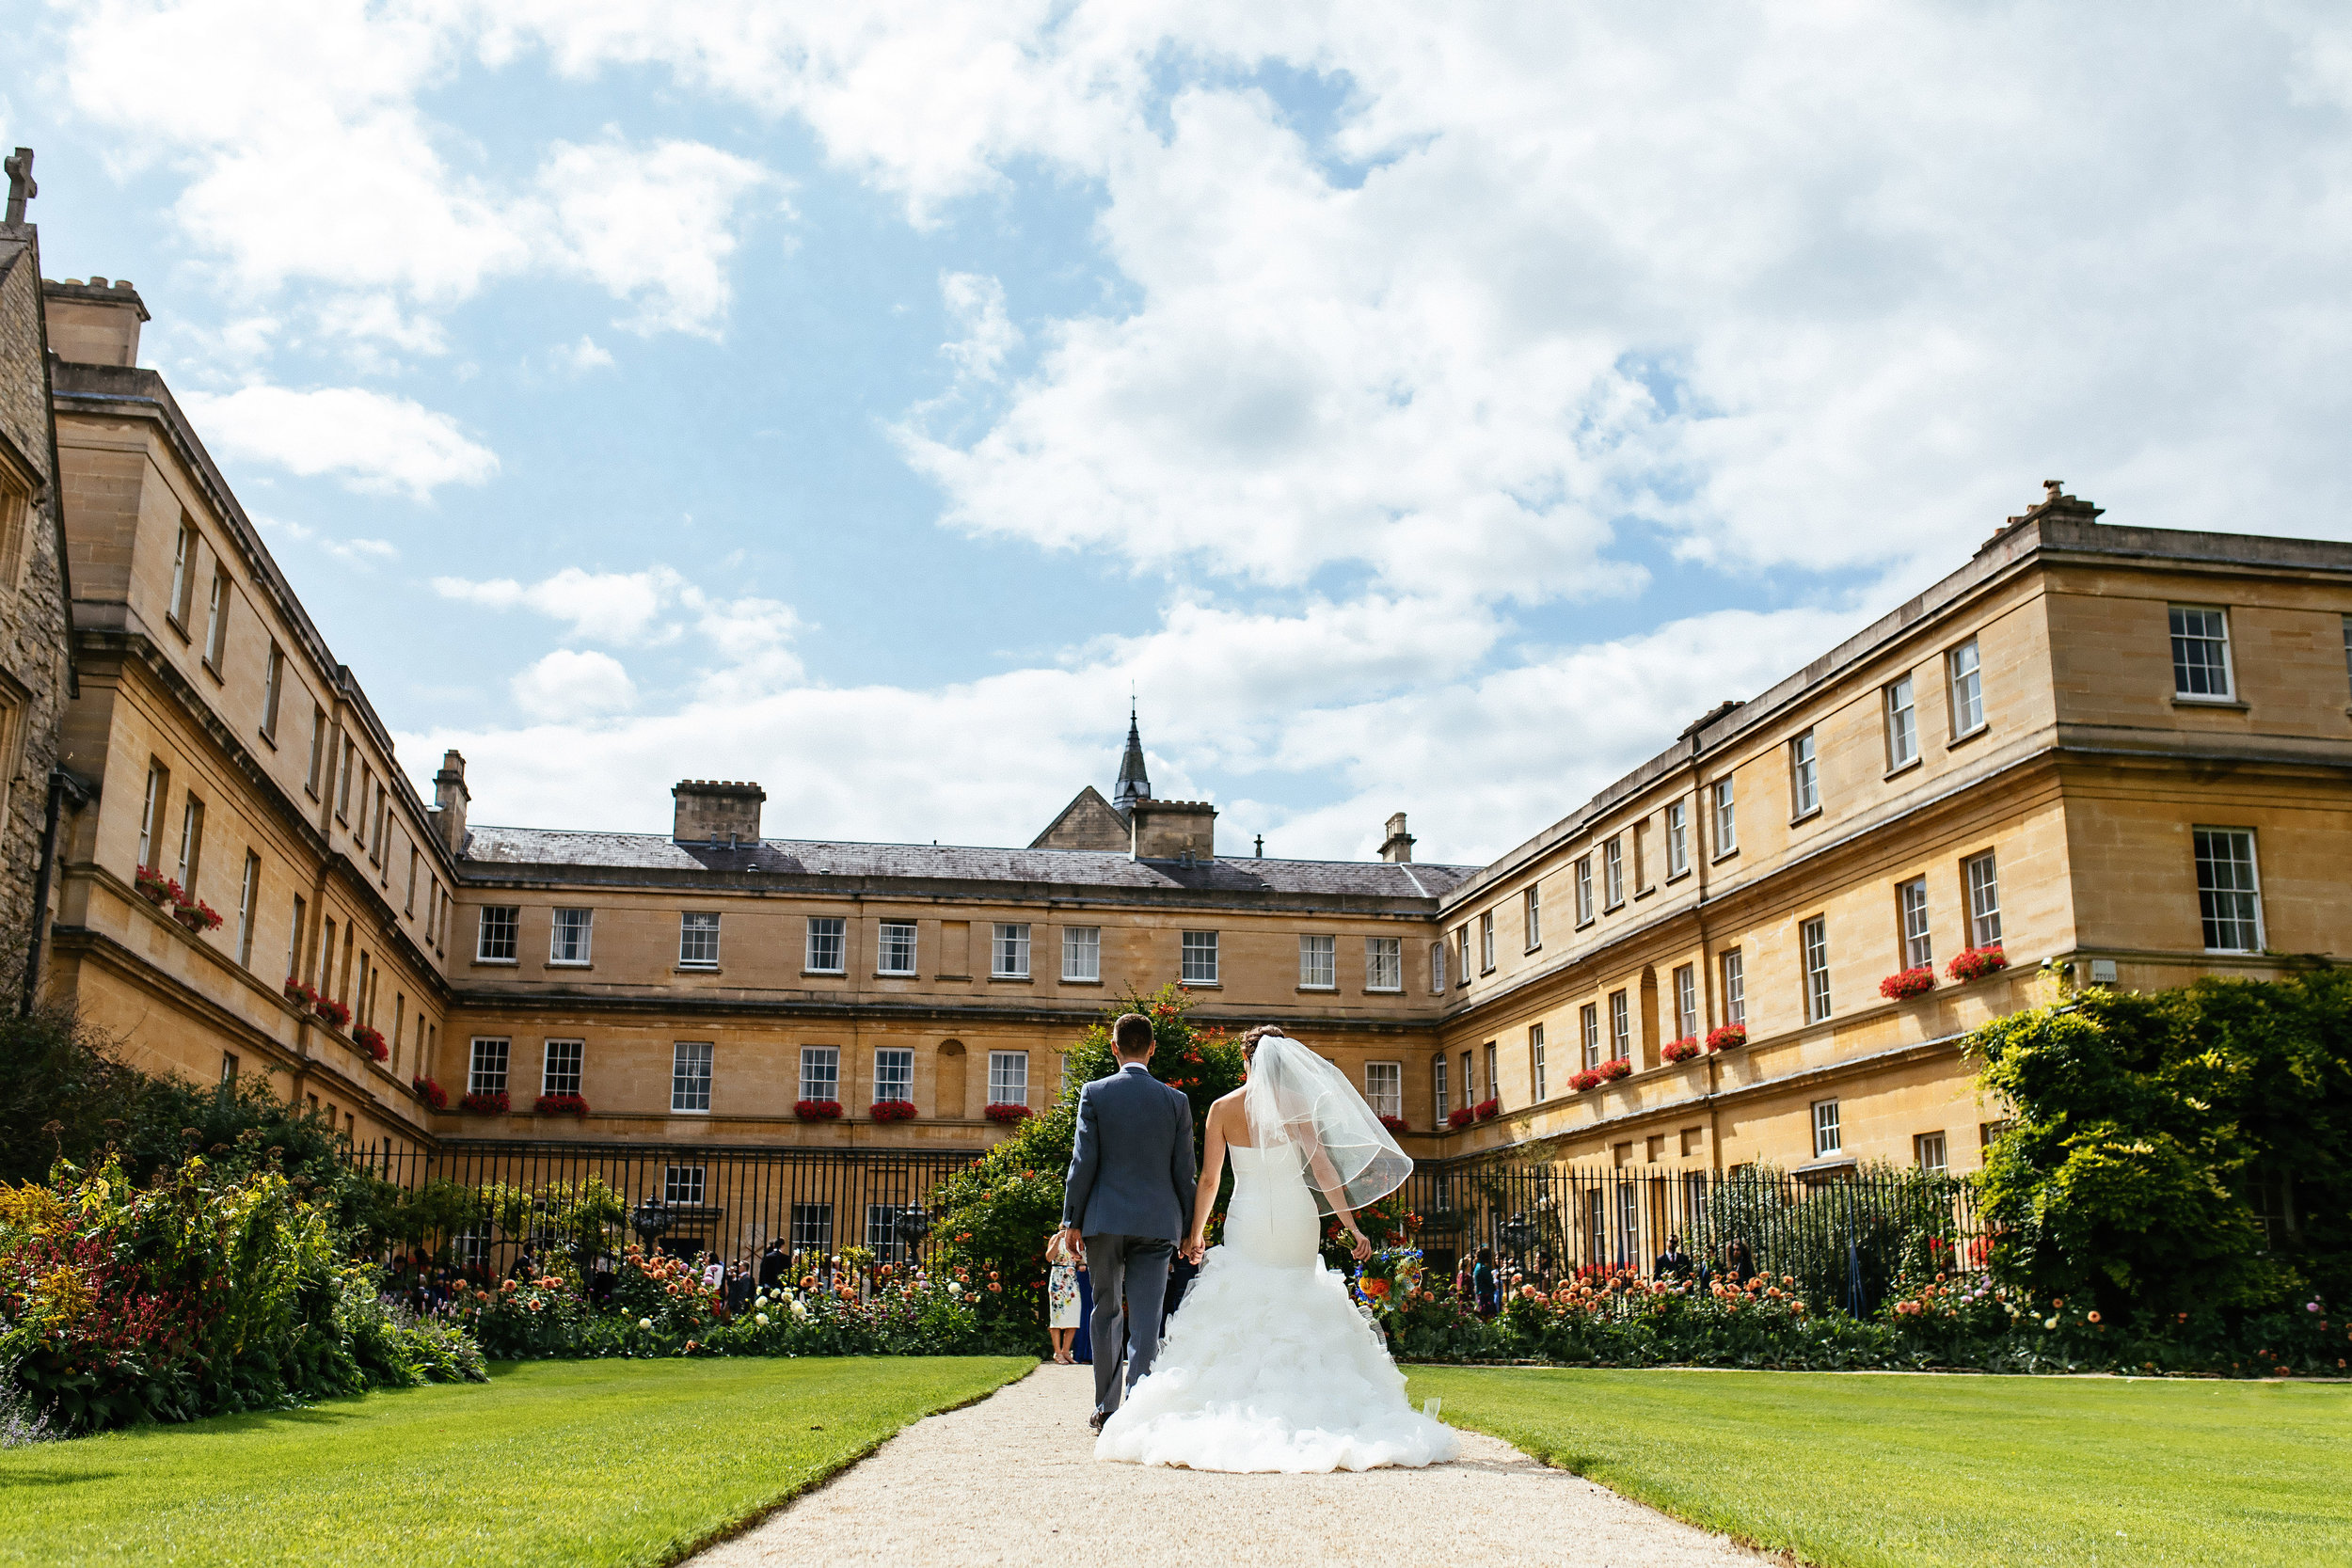 Trinity College Oxford University Wedding Photographer 0066.jpg